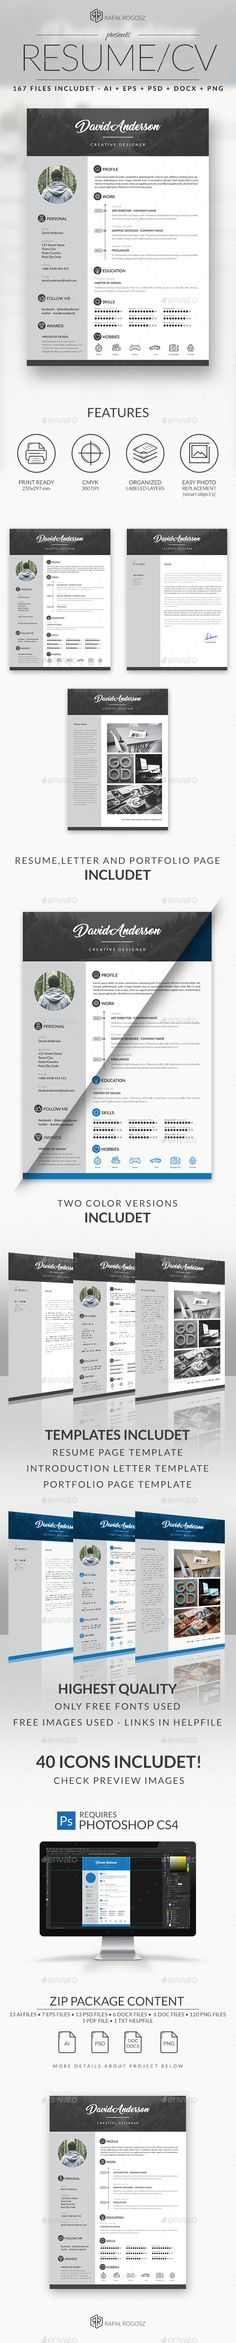 Resume CV Resume cv, Simple resume template and Simple resume - microsoft word resumes